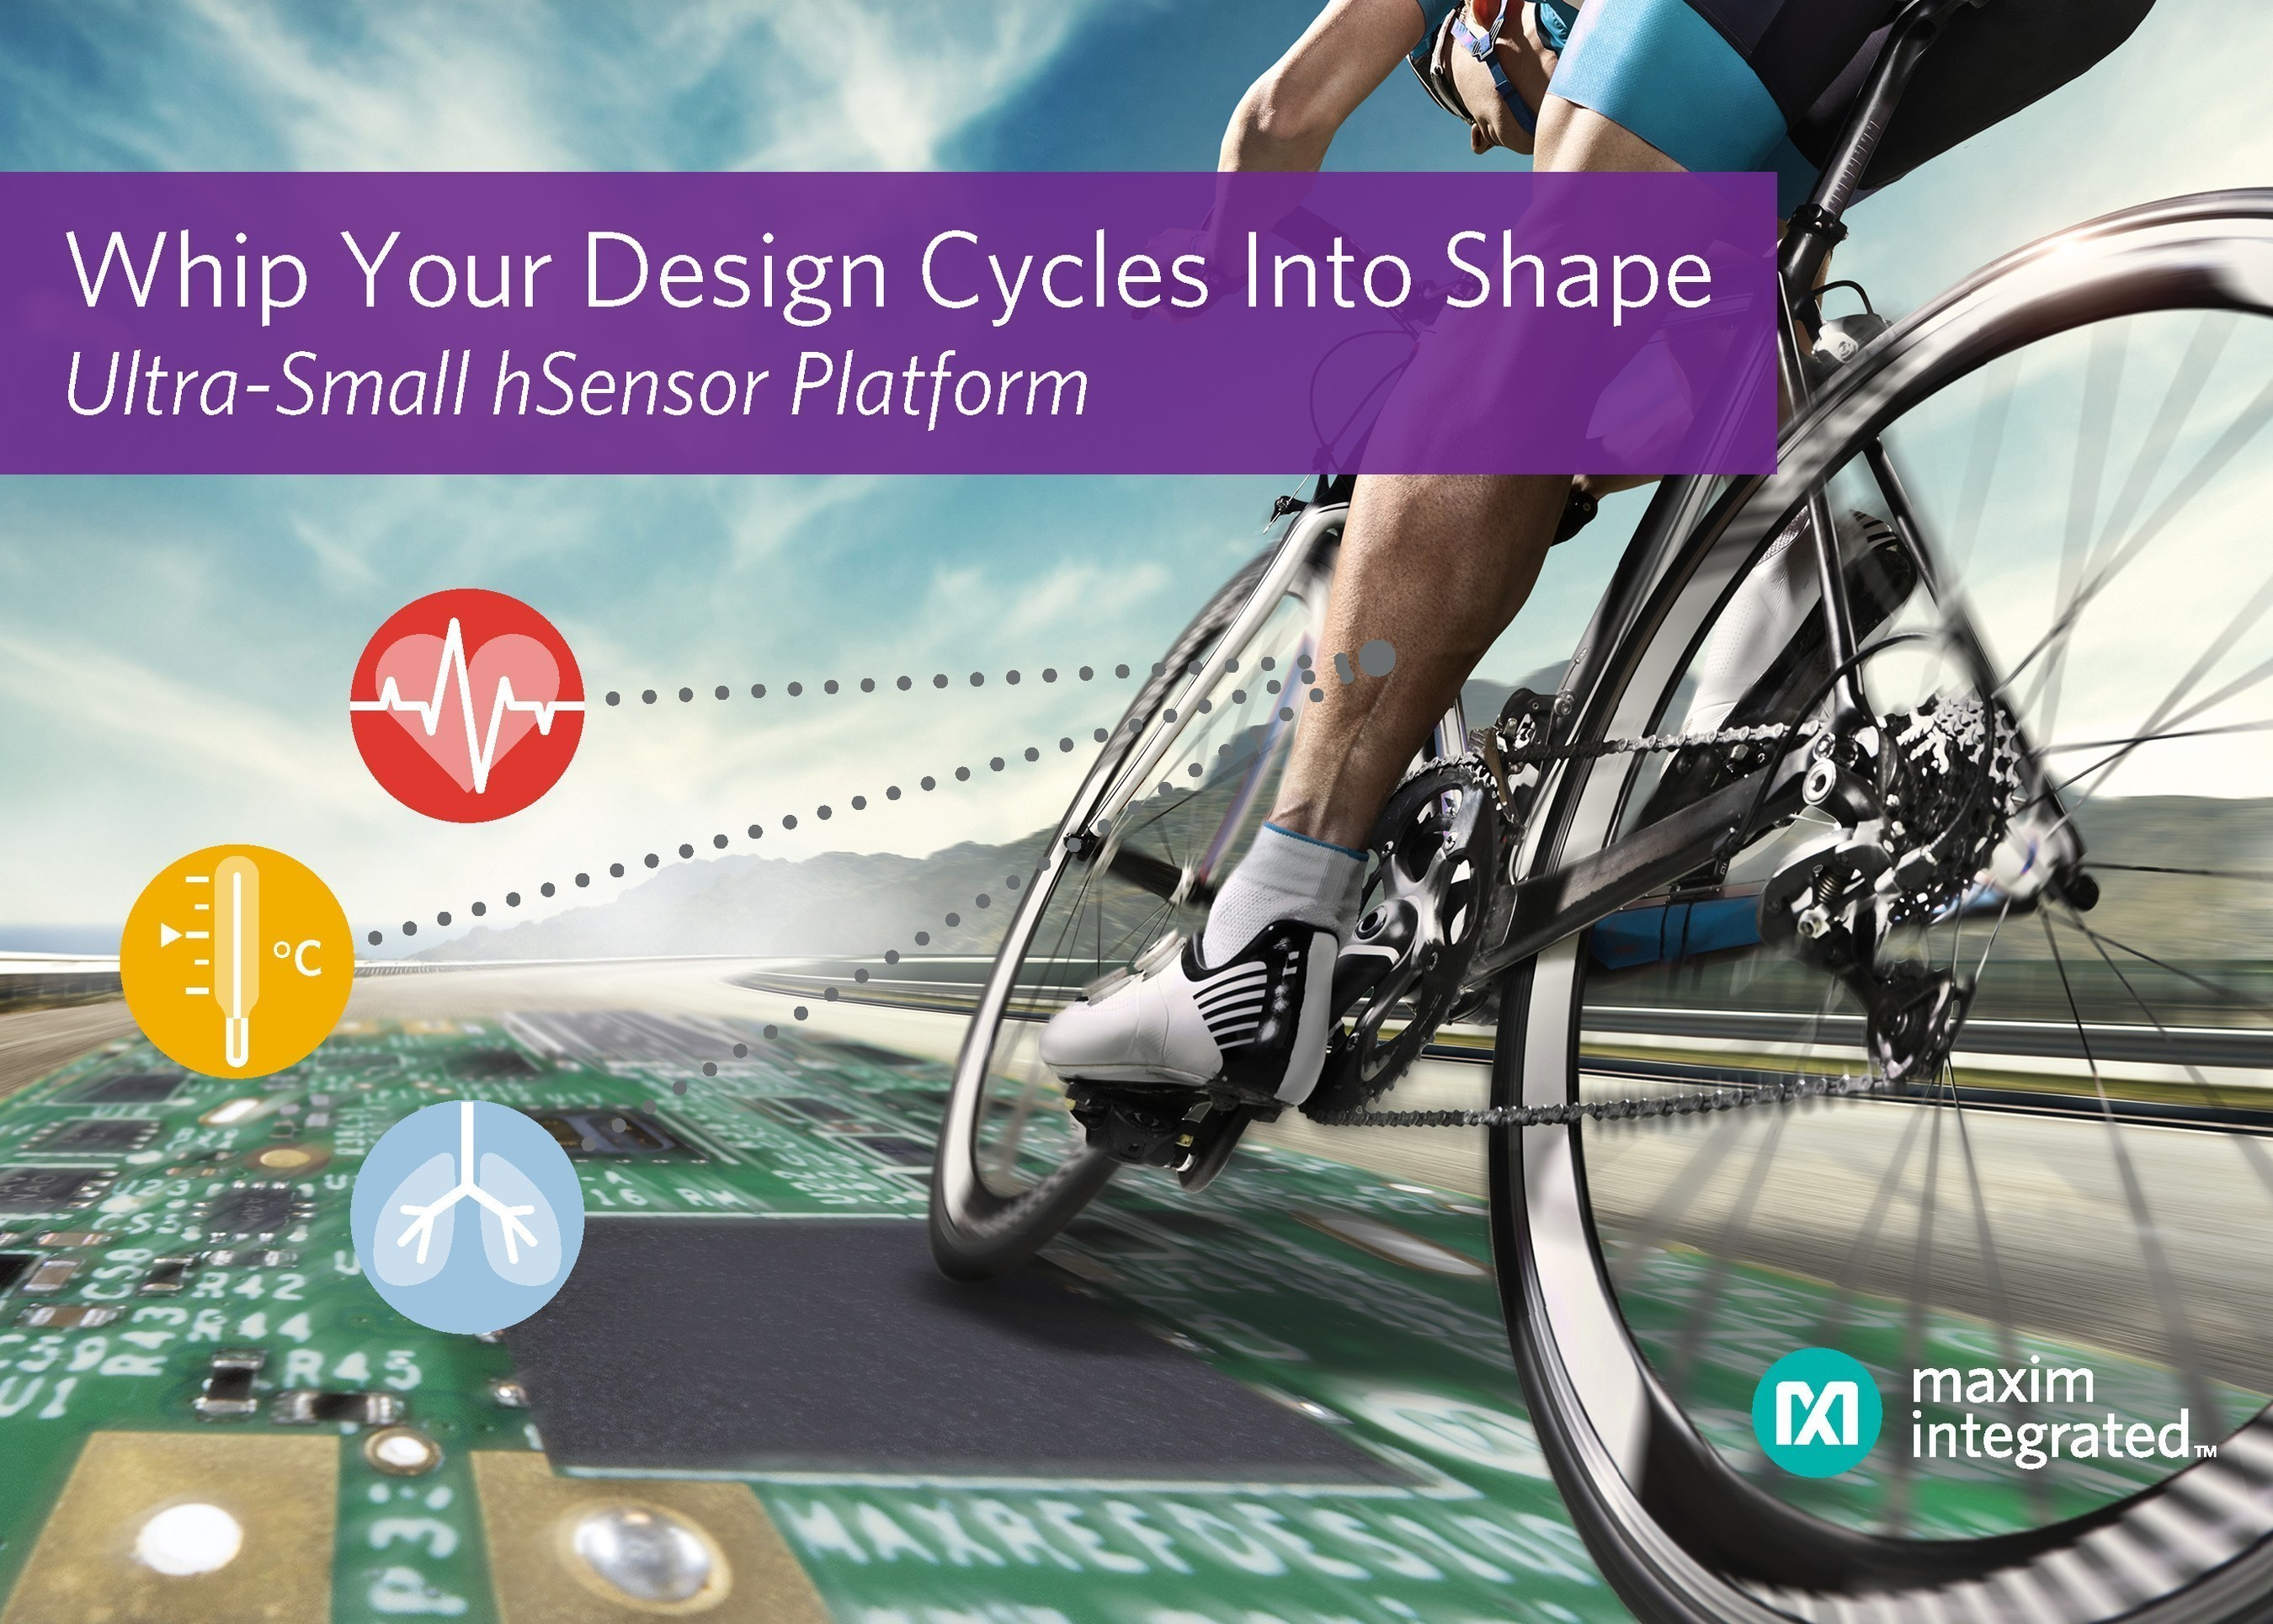 Maxim's Ultra-Small hSensor Platform Enables Quick and Easy Design for Wearable Health and Fitness Applications